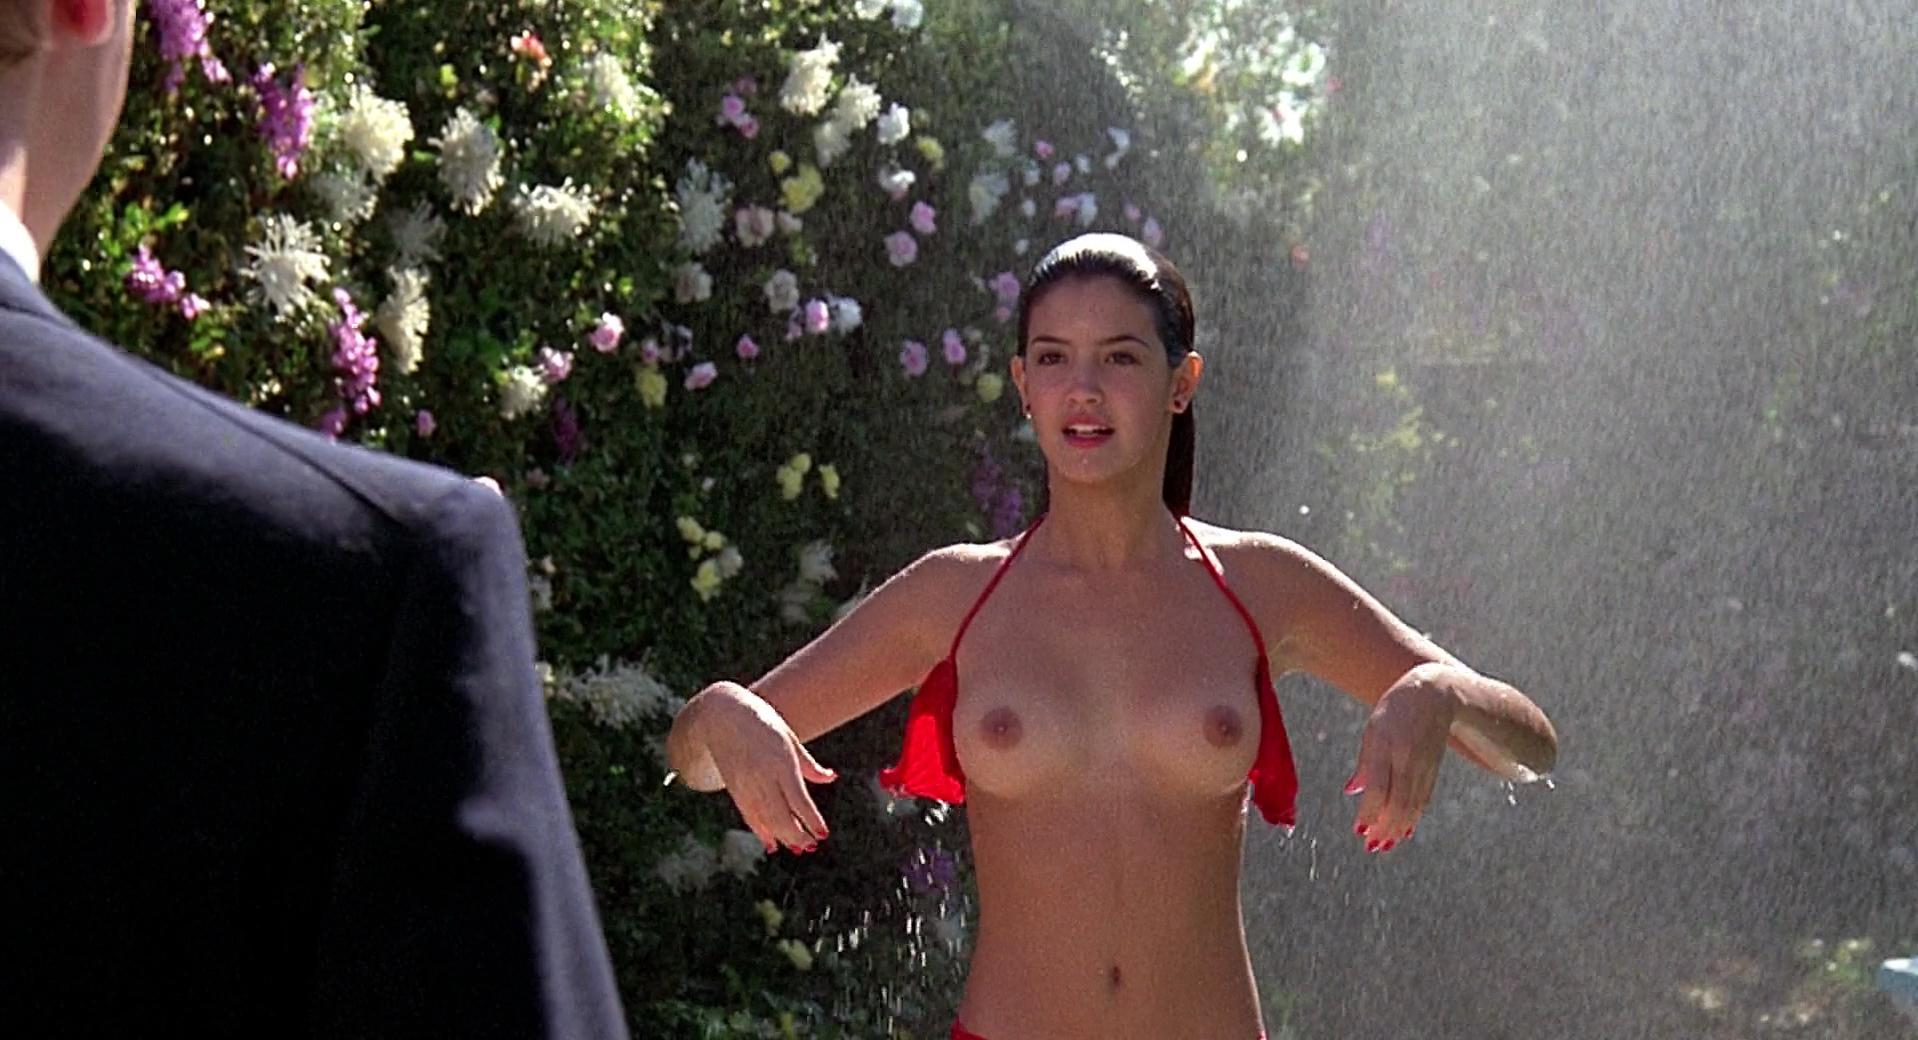 Fast Times at Ridgemont High (1982) – Phoebe Cates Nude Scene Video